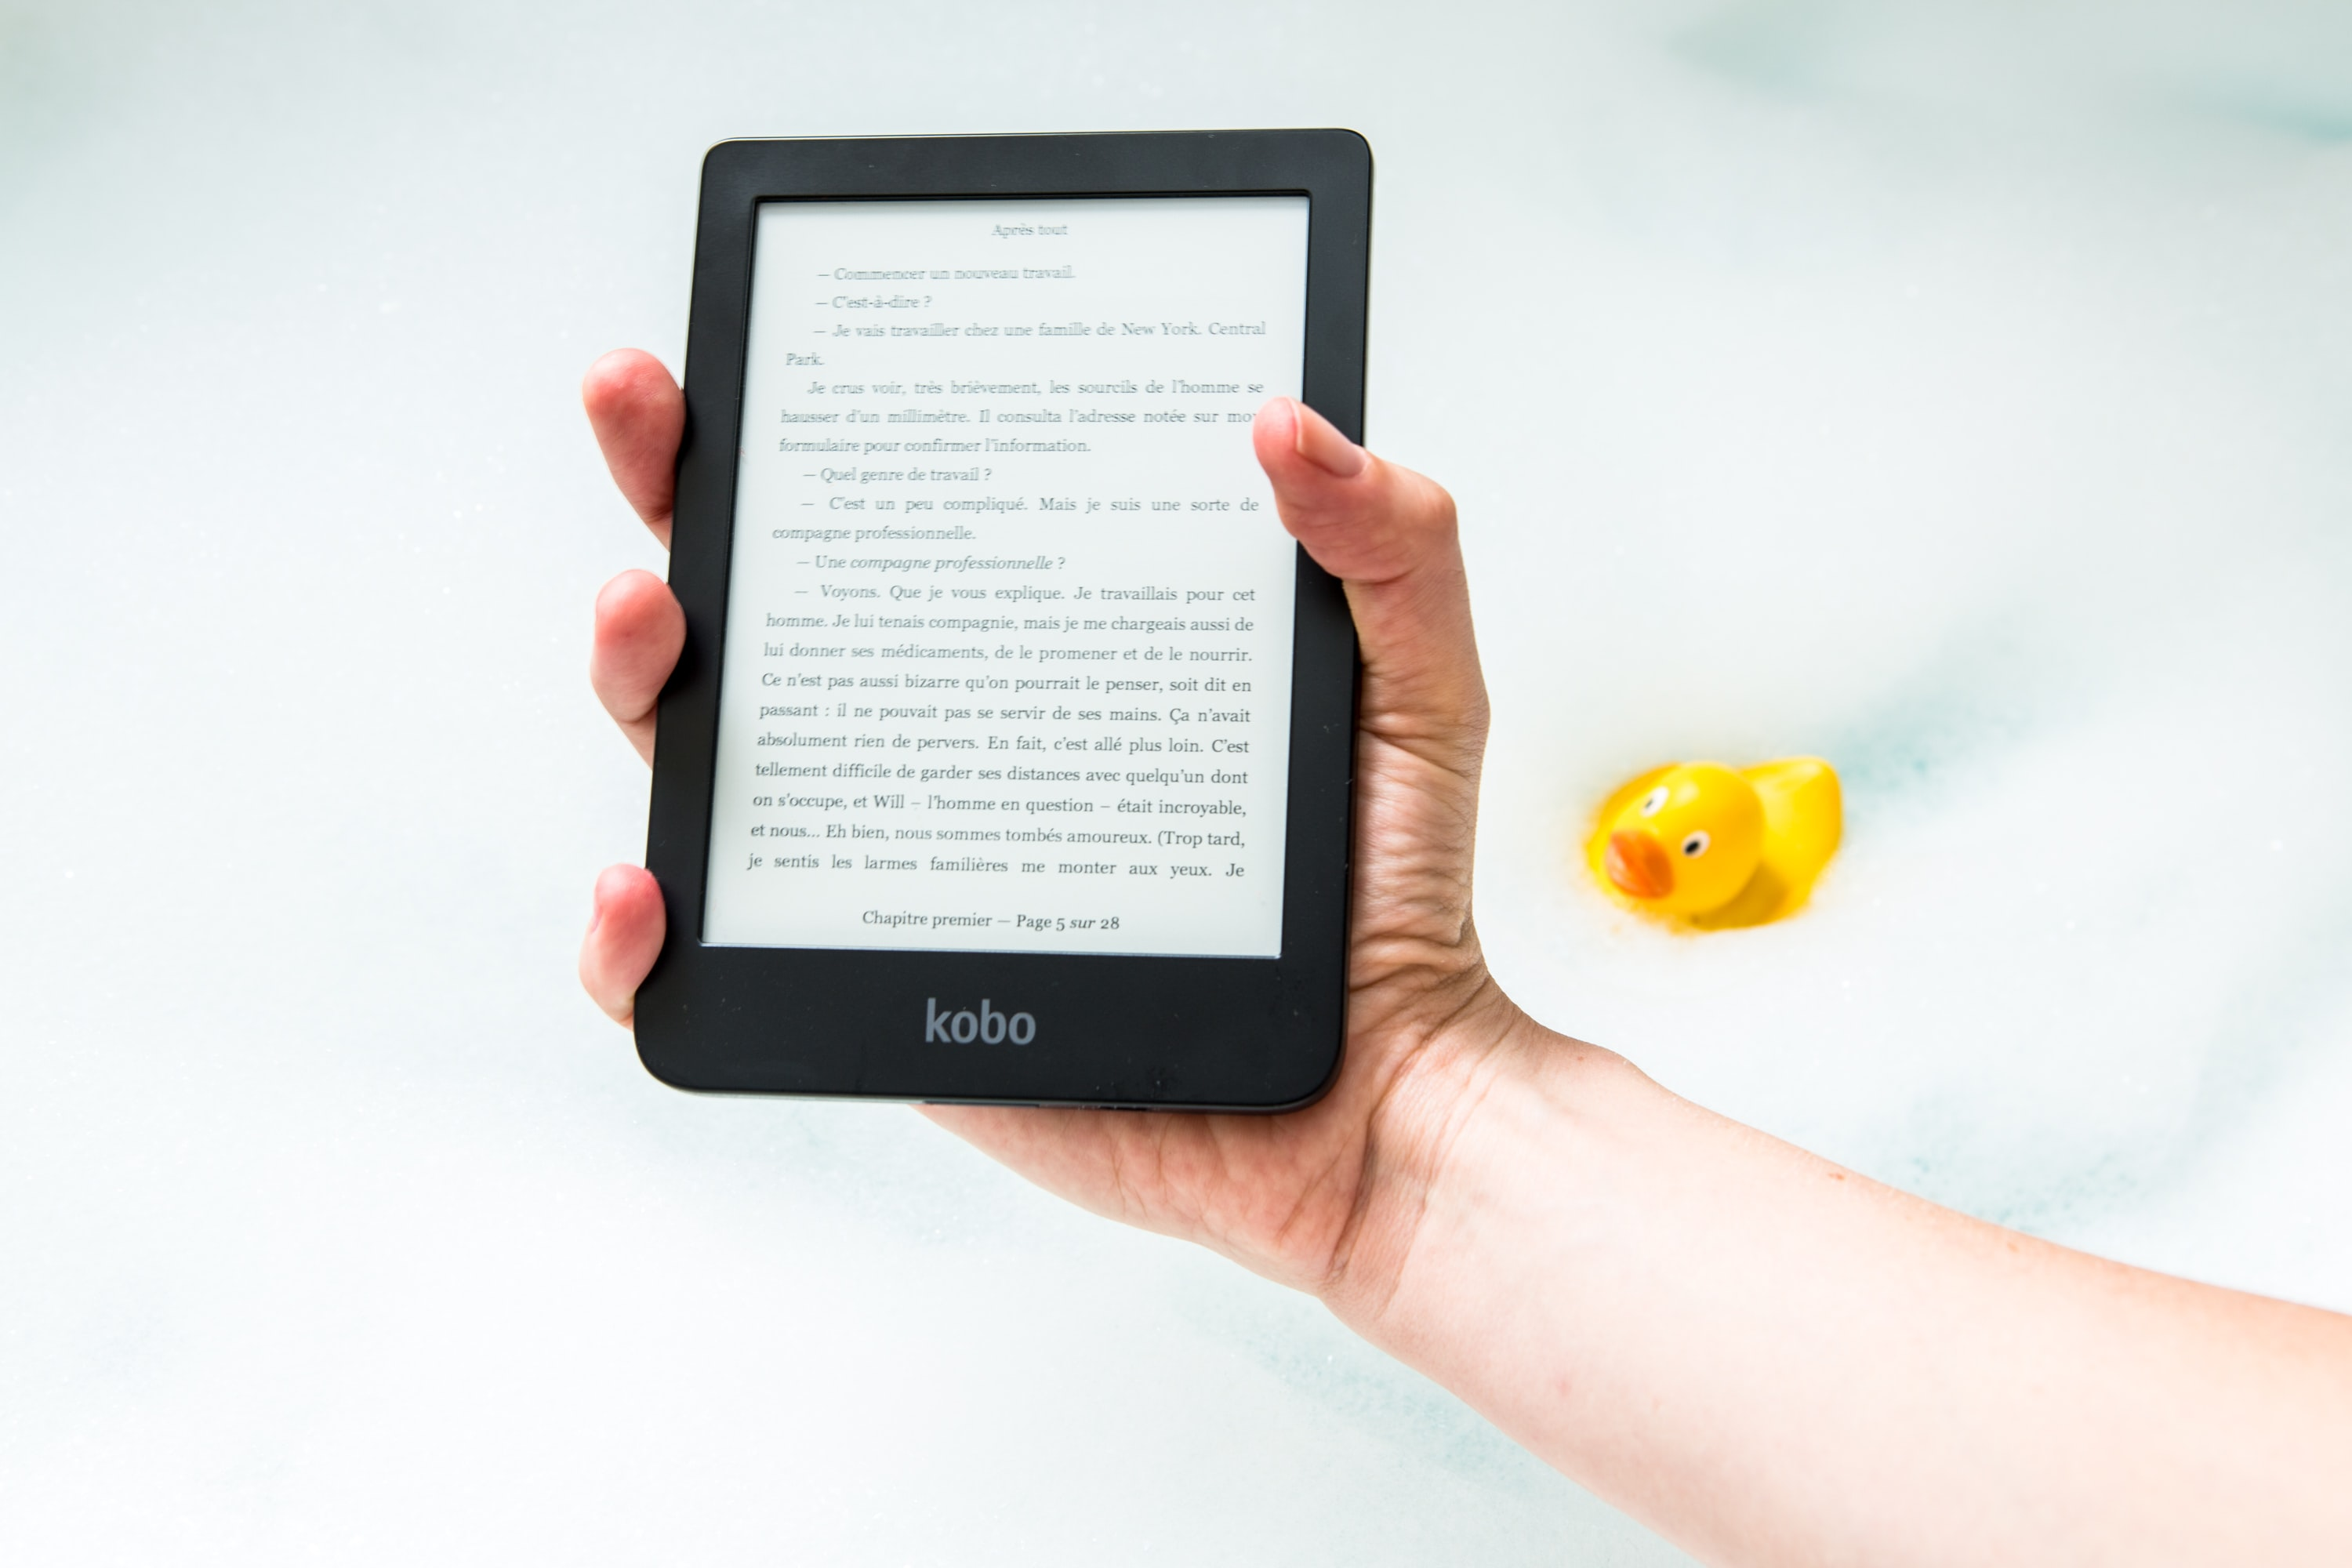 person holding turned on Amazon Kindle ebook reader